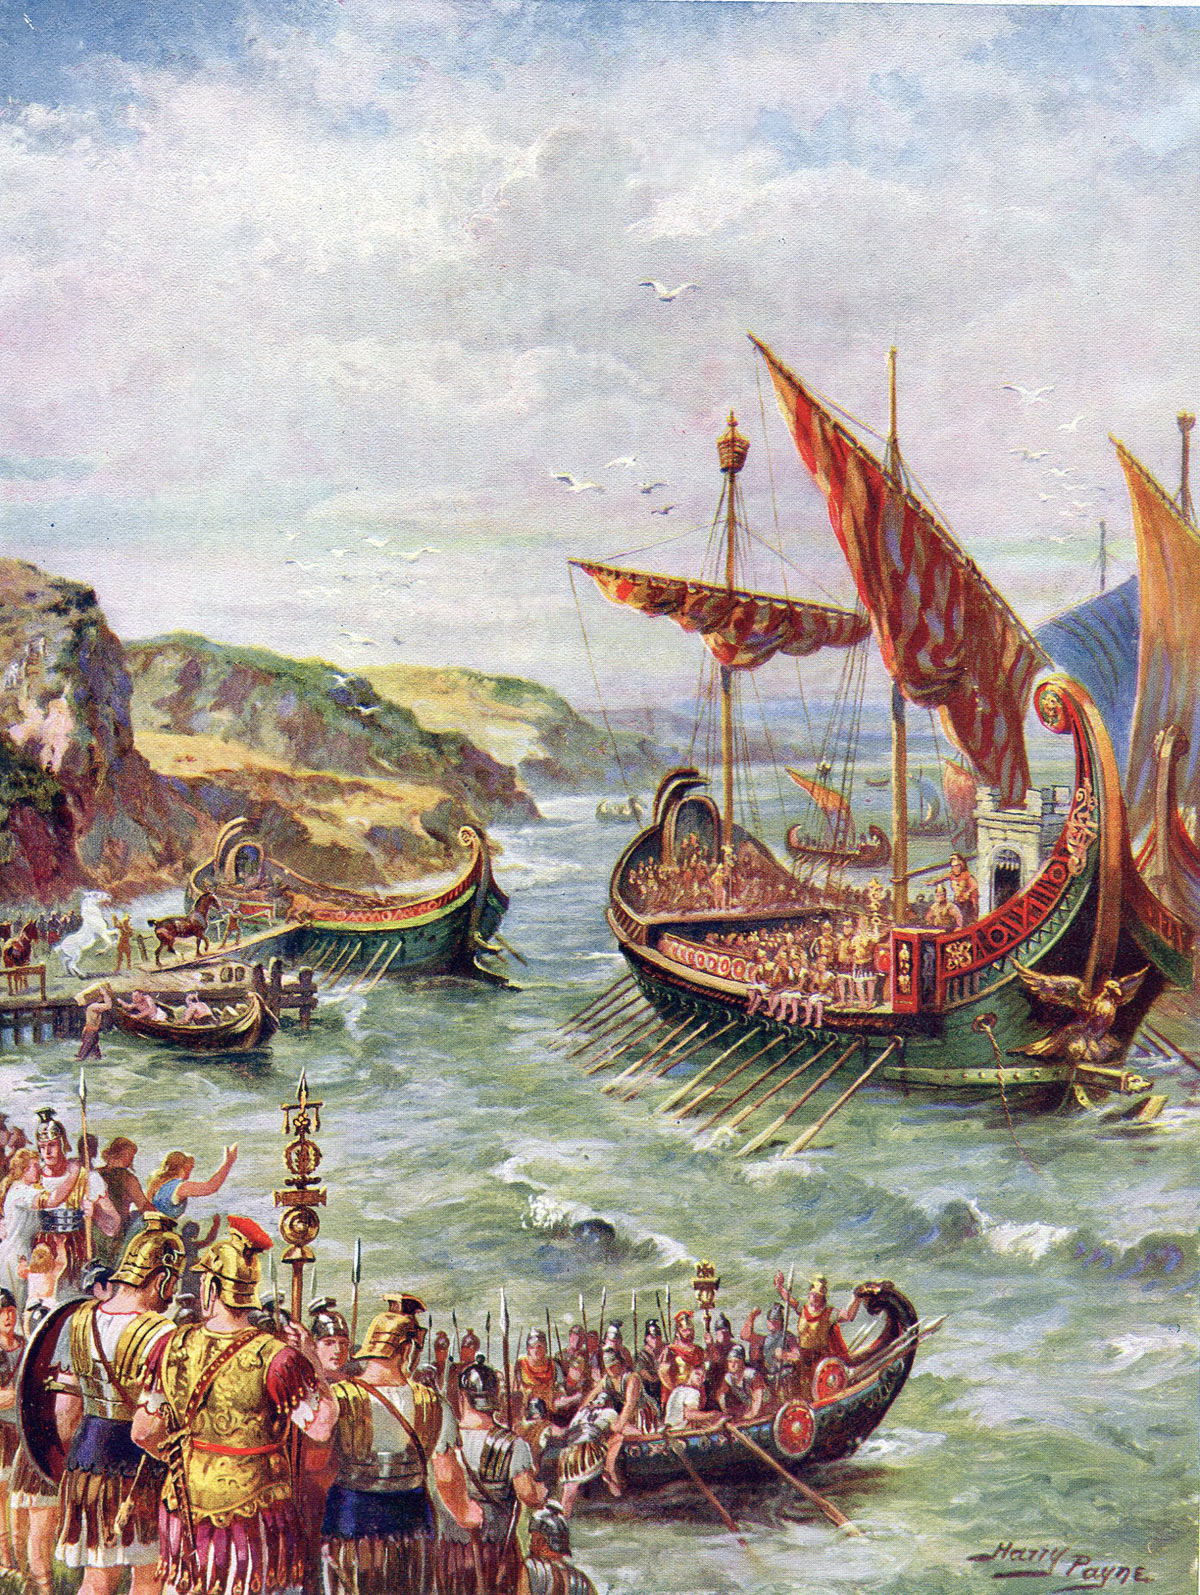 The Roman fleet landing on the coast of Britain for the Emperor Claudius' invasion of Britain. Picture by Harry Payne: click here to buy this picture